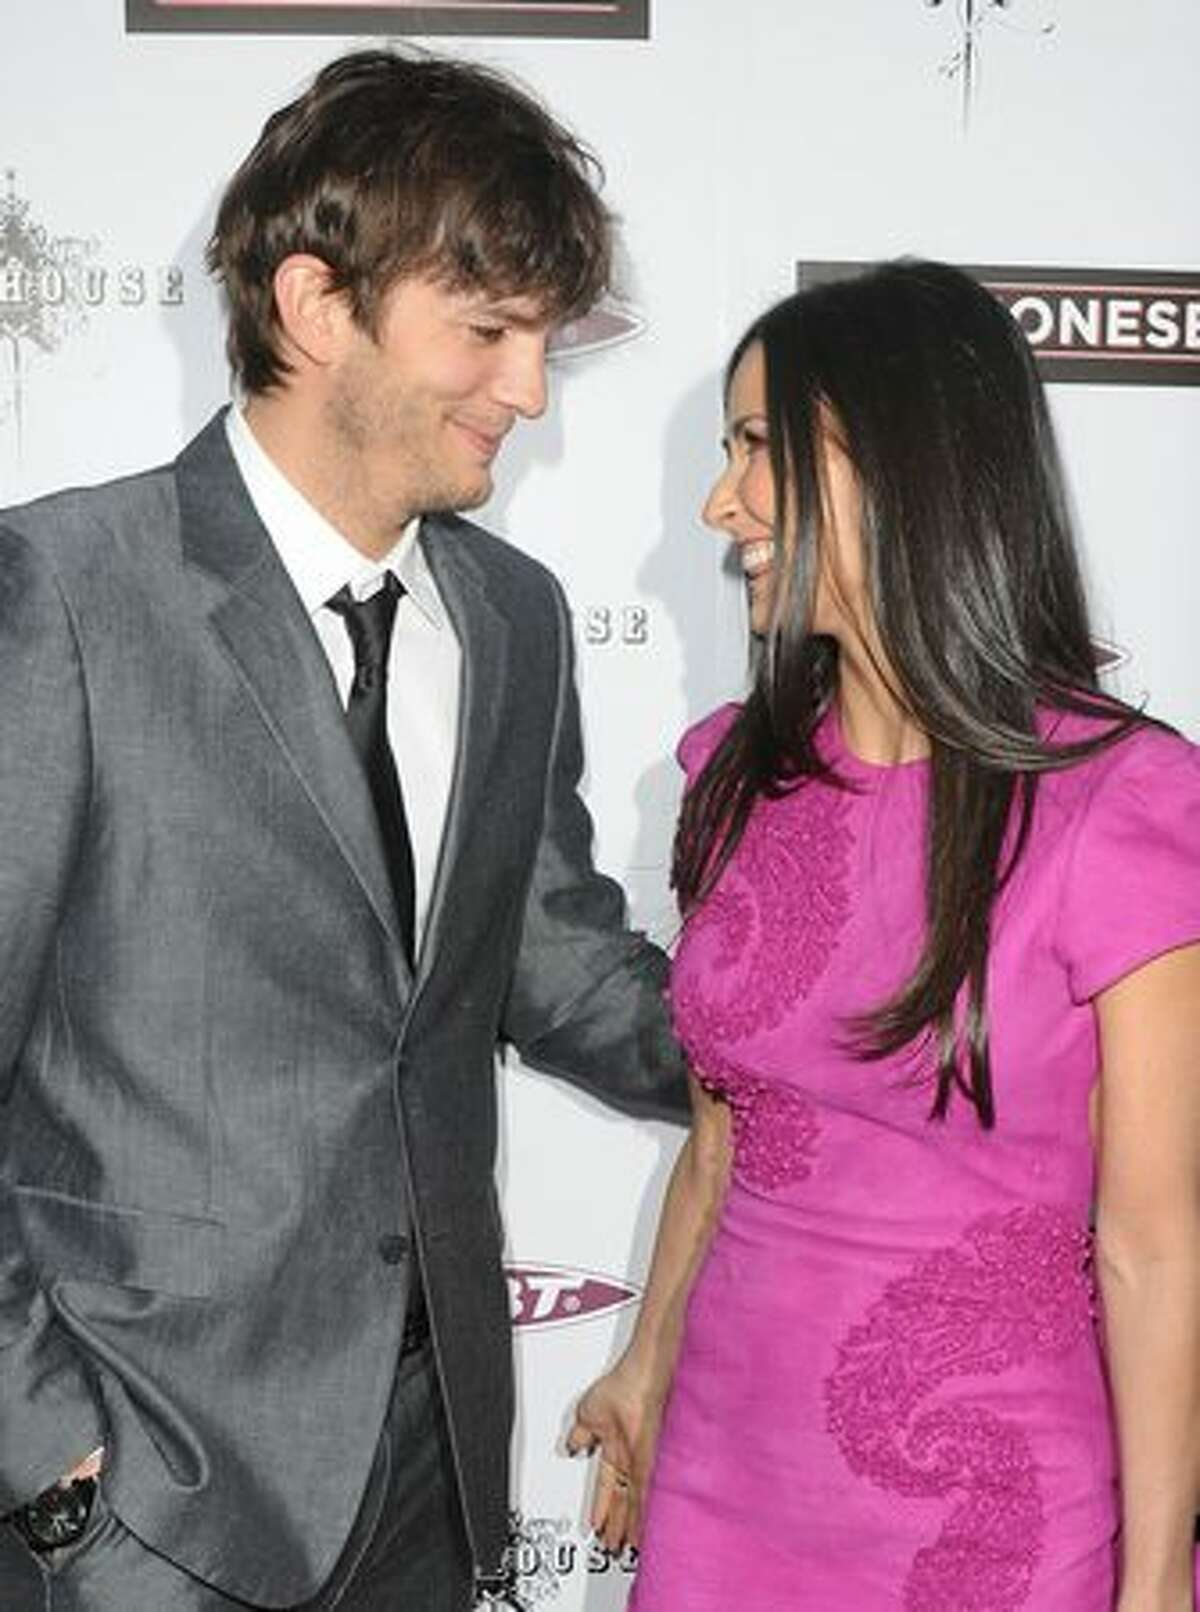 Actors Ashton Kutcher and Demi Moore arrive at Roadside Attractions & Echo Lake Entertainment's premiere of 'The Joneses' held at Arclight Hollywood Cinema on April 8, 2010 in Los Angeles, California.